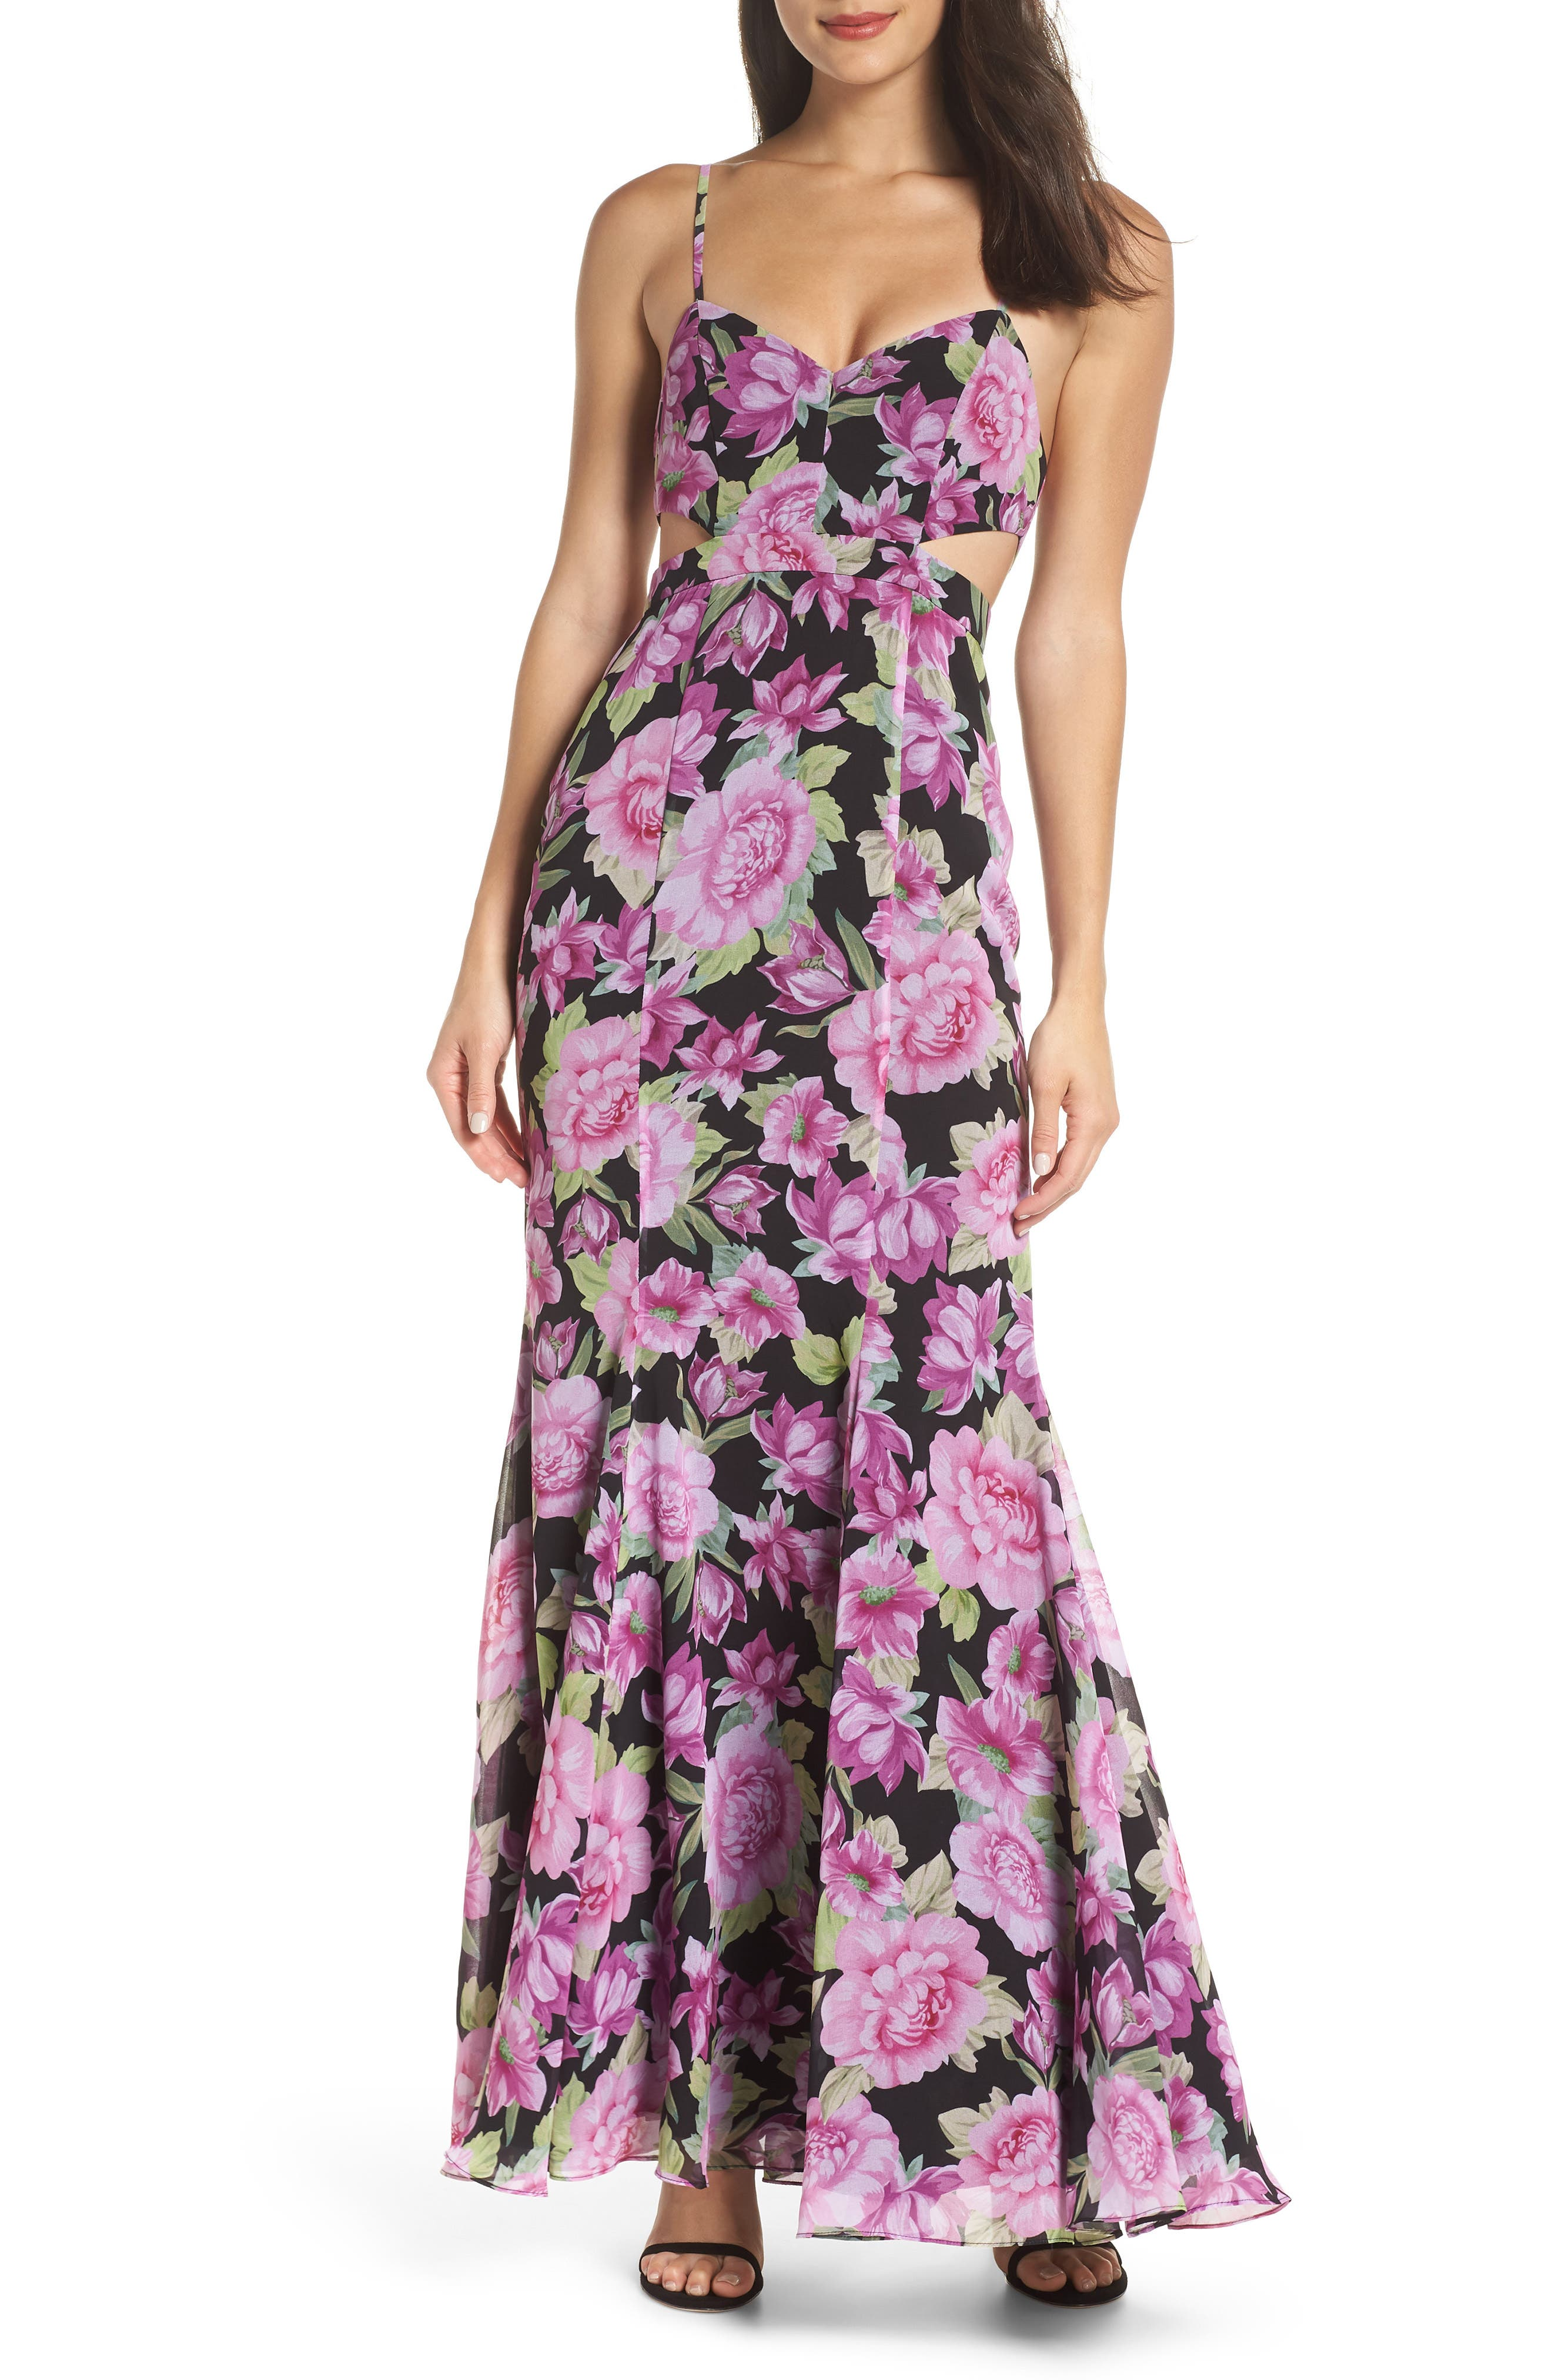 FAME AND PARTNERS The Sienne Cutout Waist Gown in Wallflower Print